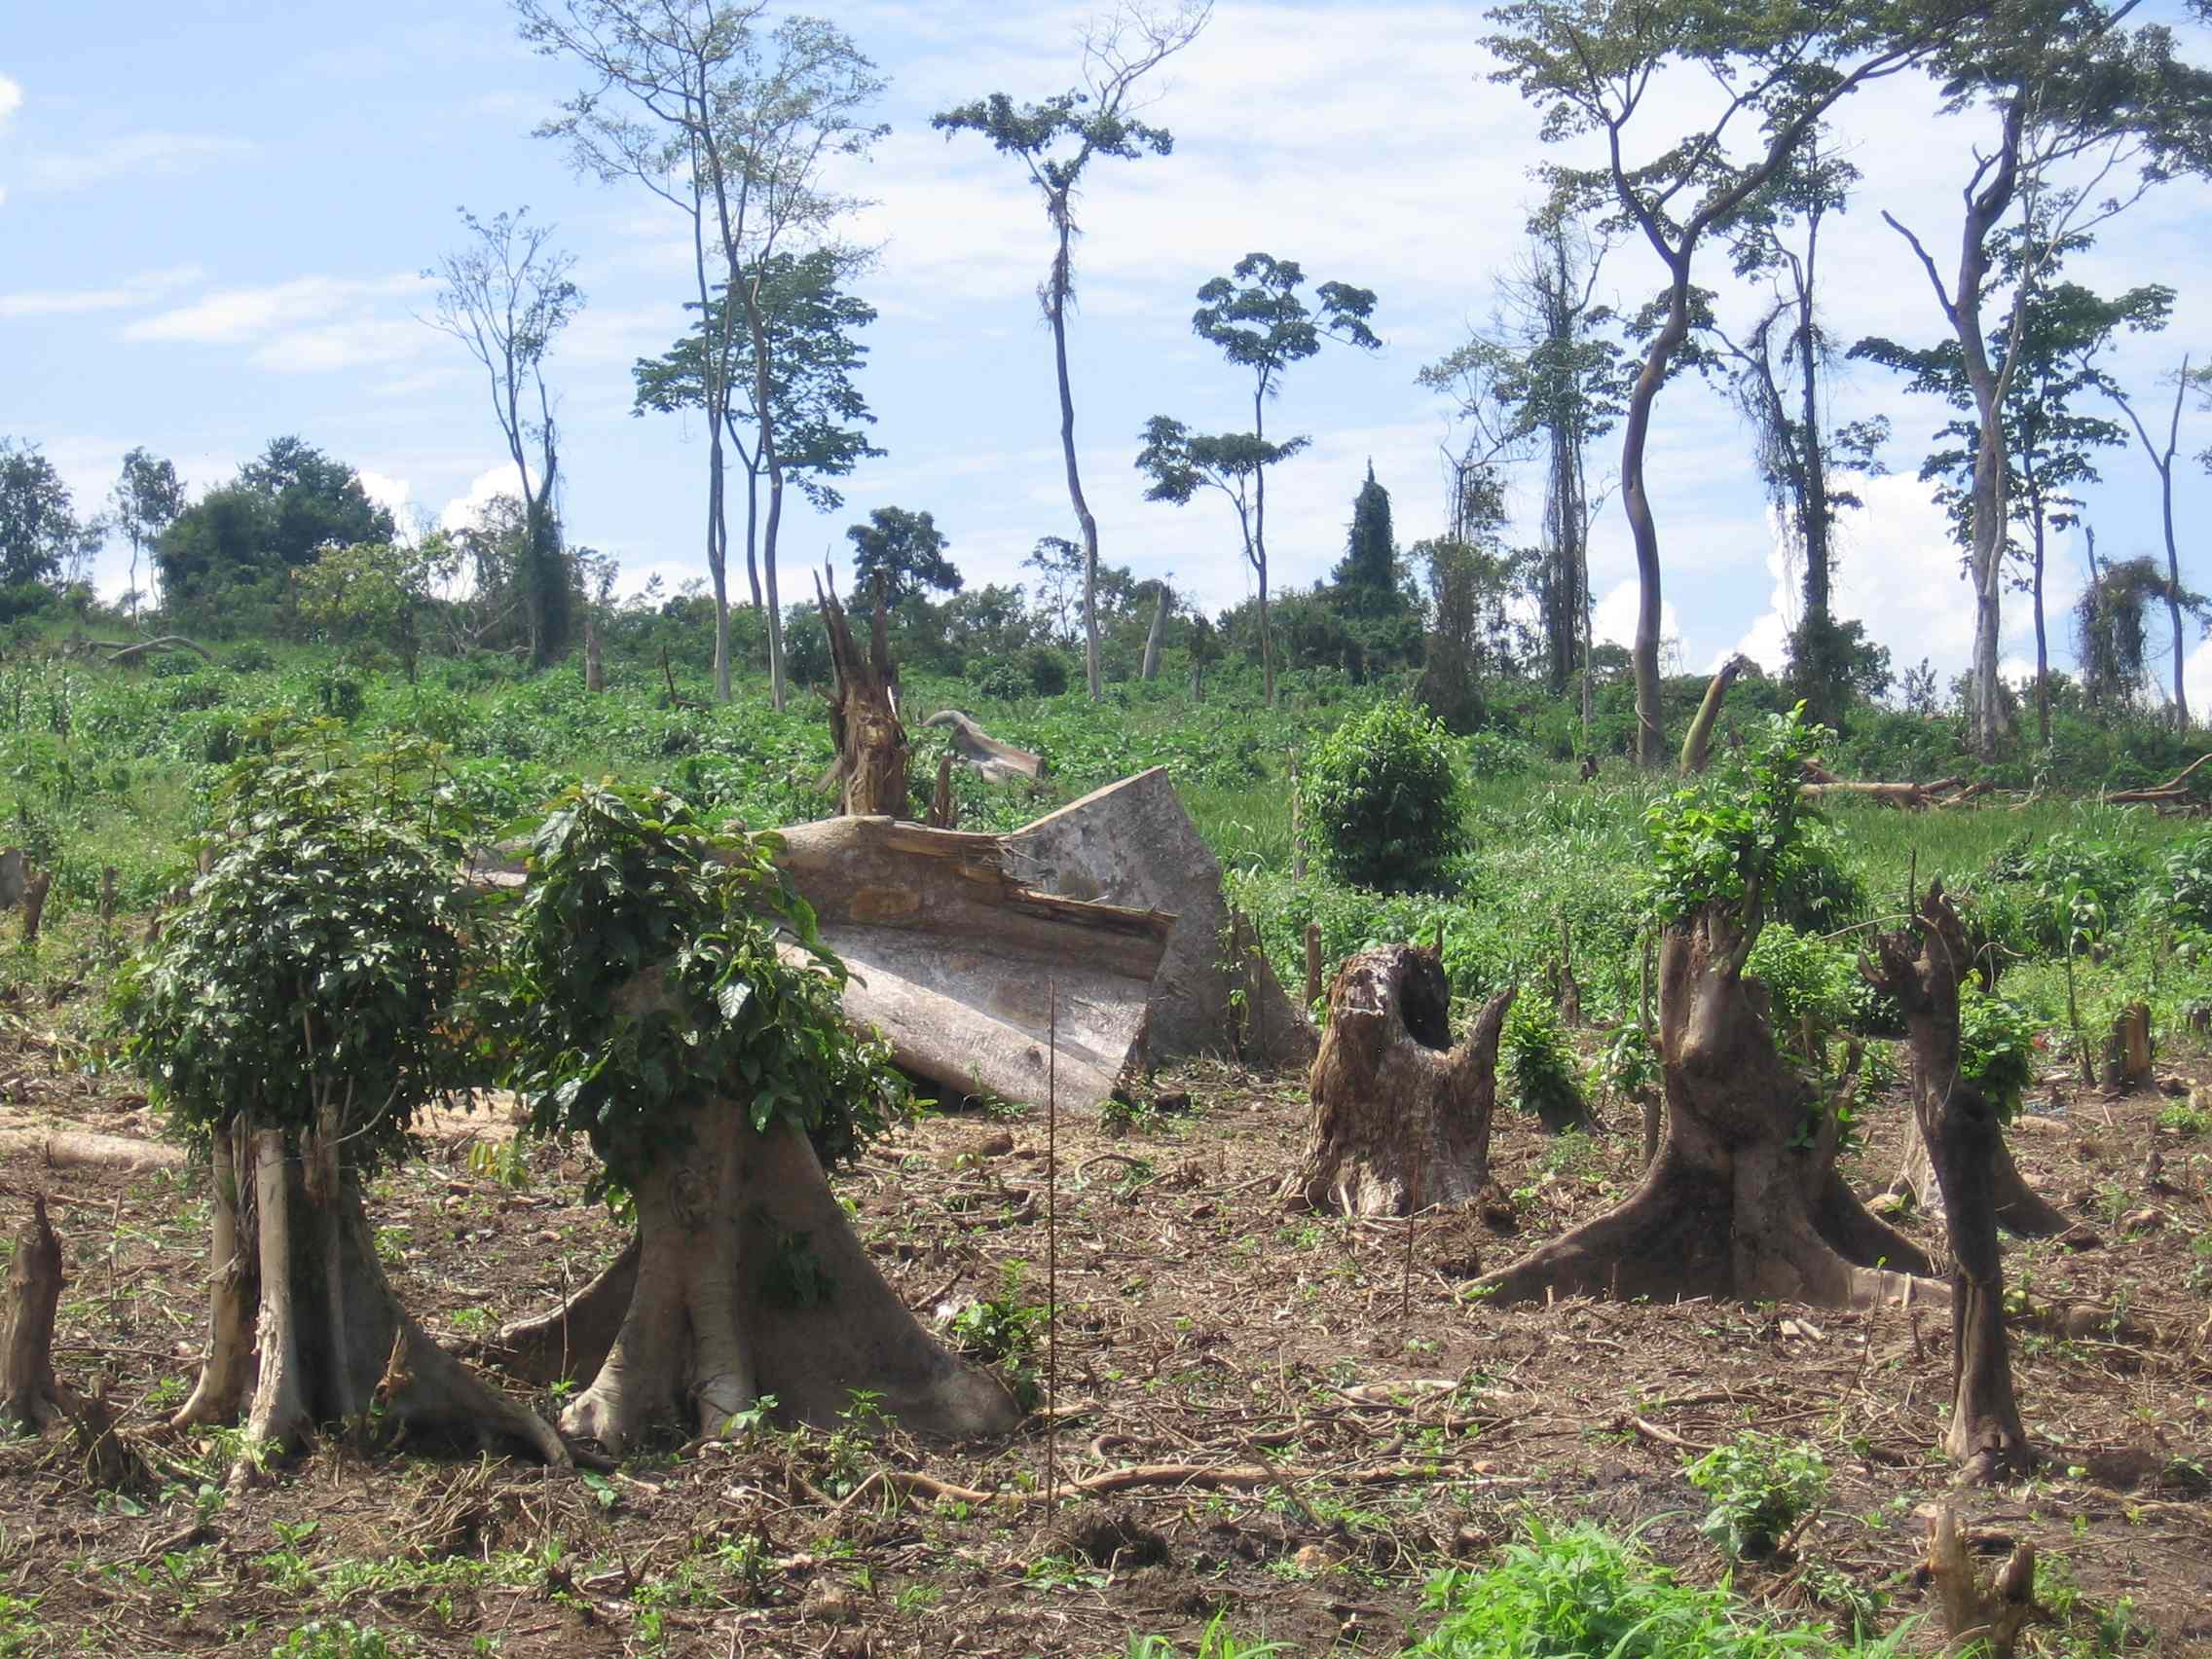 biodiversity and afforestation Commercial afforestation rather than deforestation is a cause of major environmental degradation and social problems in many parts of the world effects of large-scale monoculture tree plantations, especially on grassland biodiversity, can be disastrous.